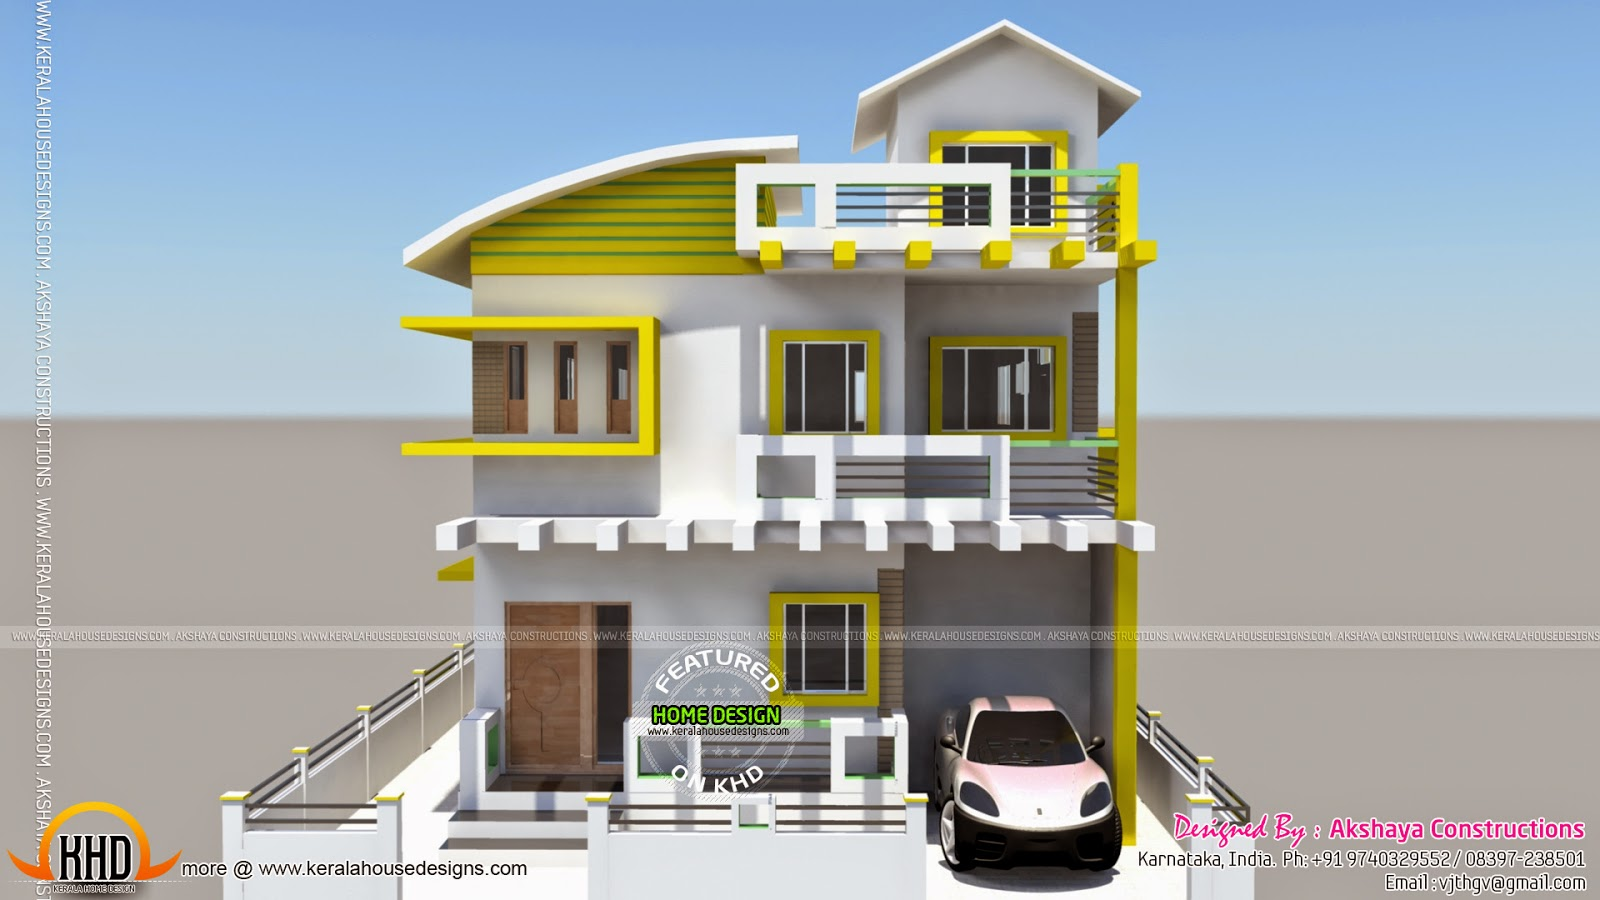 Karnataka home design kerala home design and floor plans for Design for house